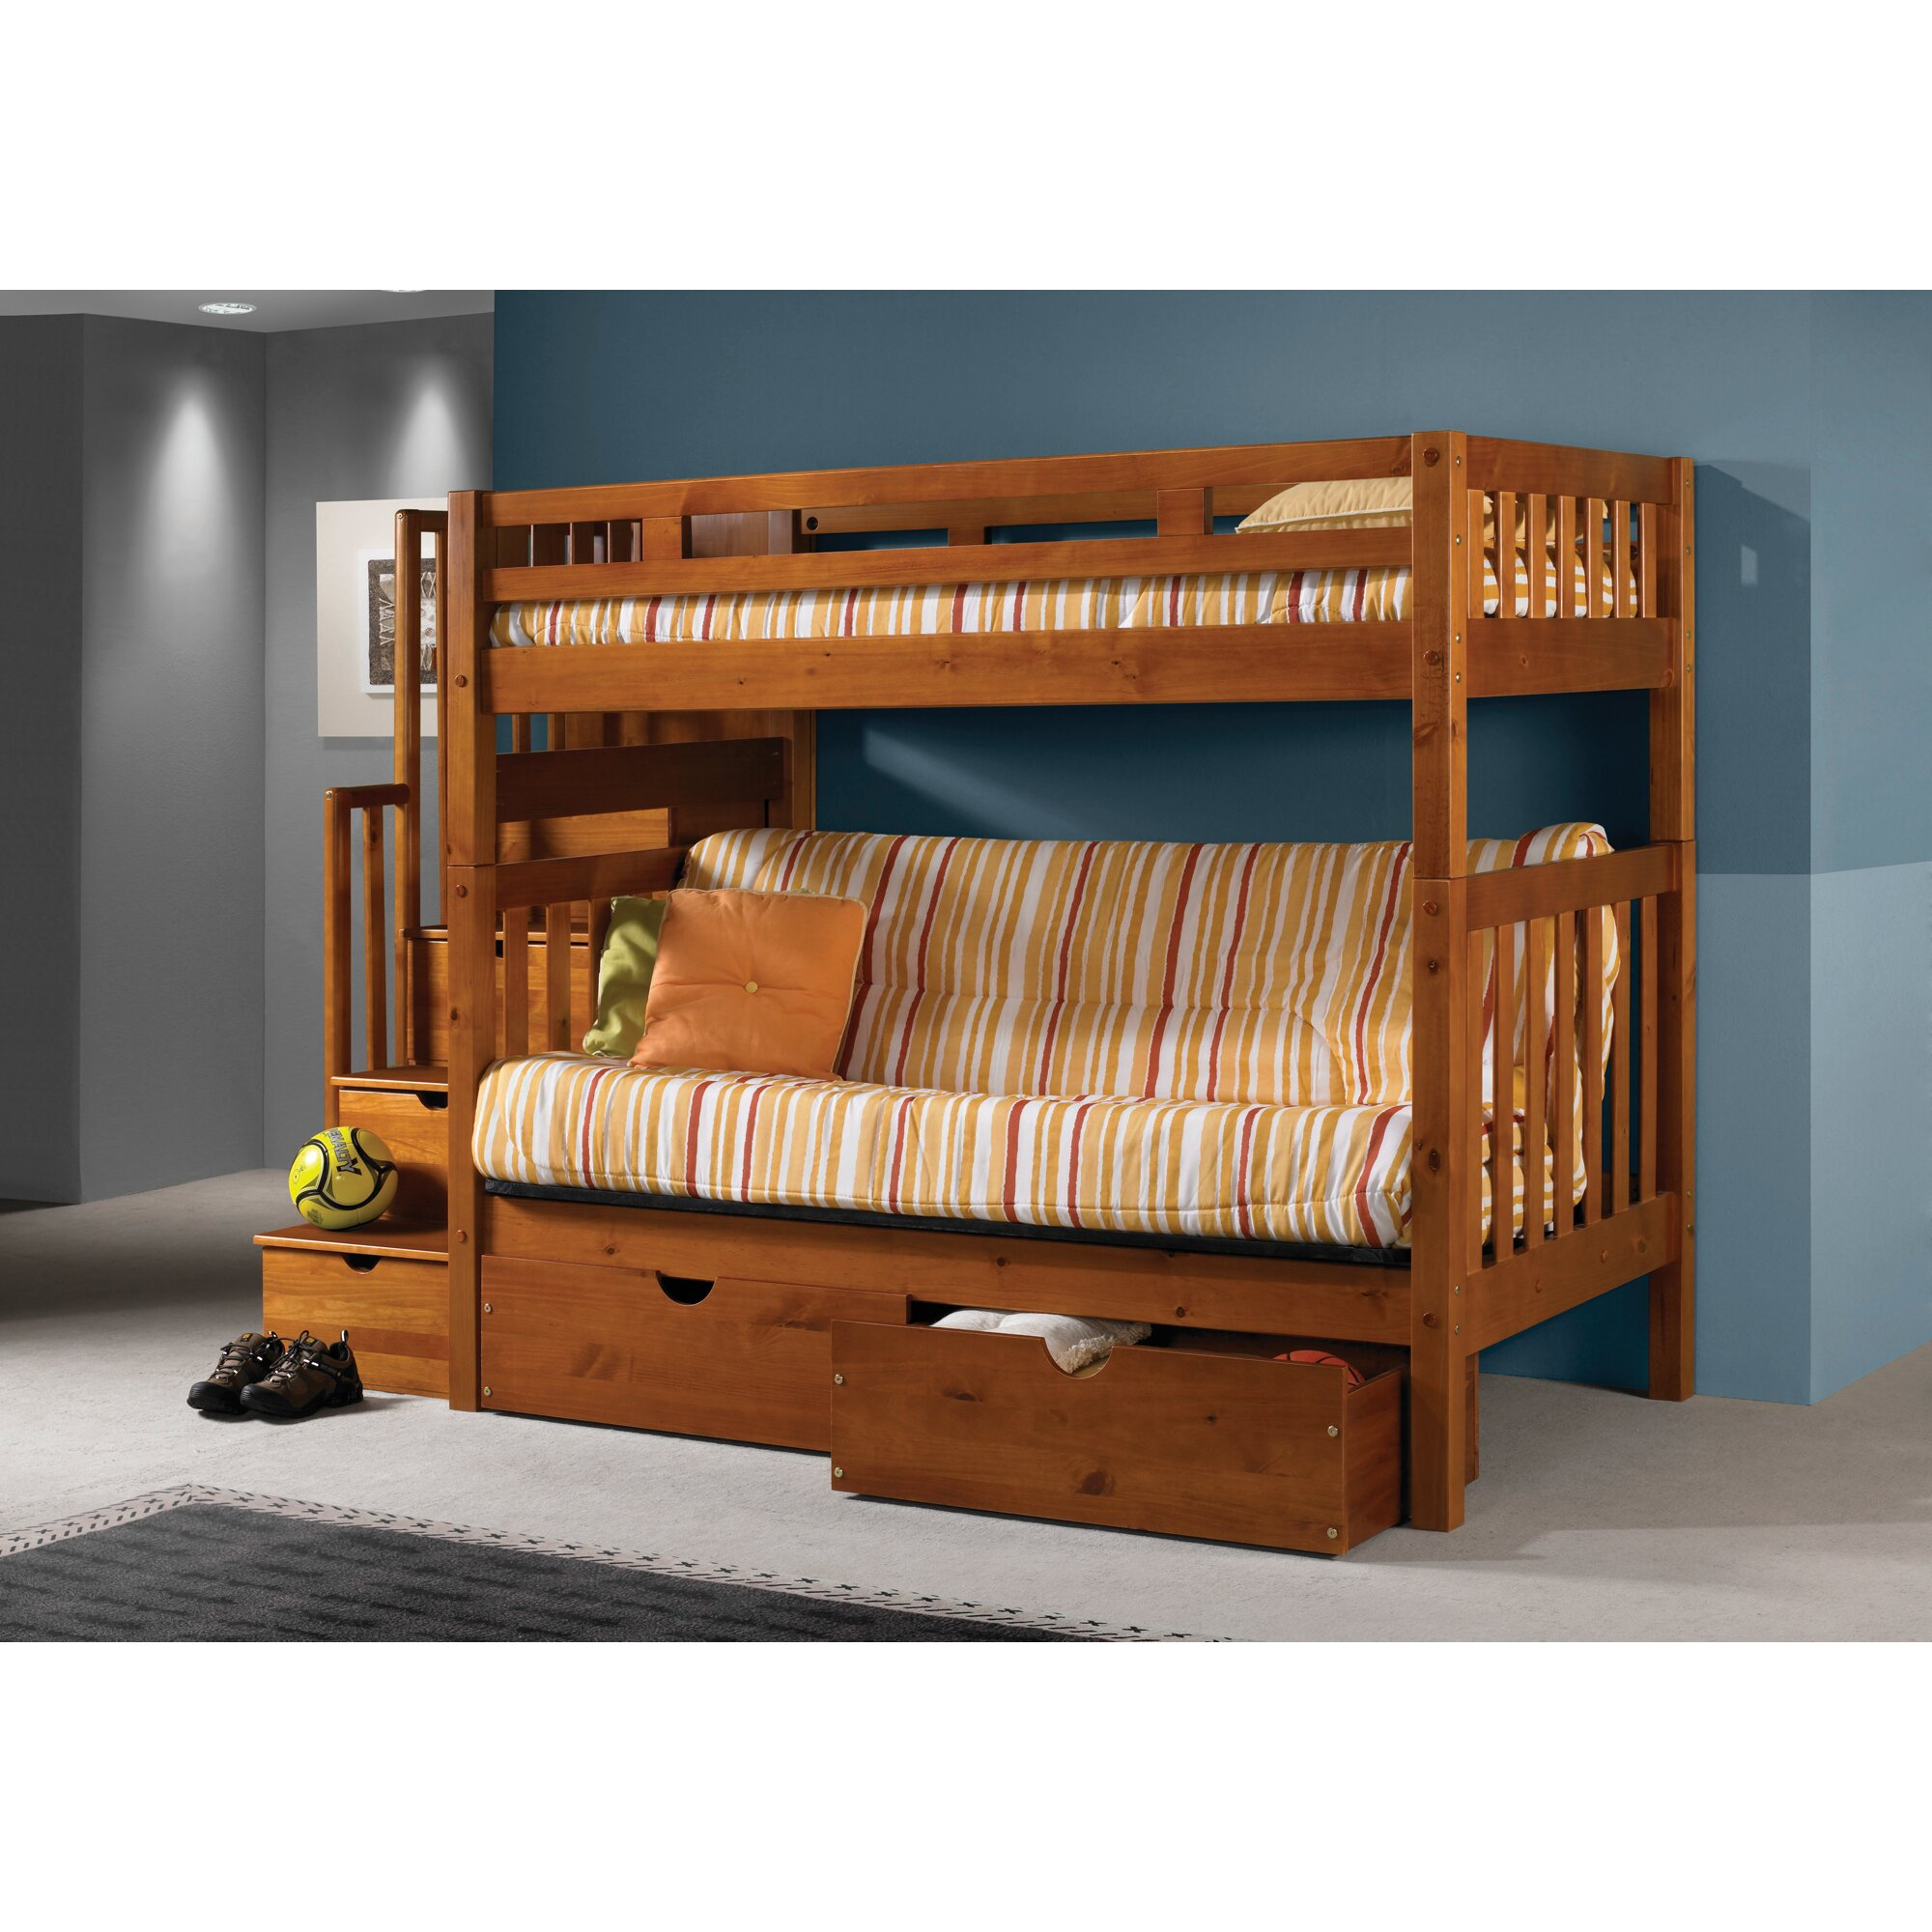 Donco kids stairway loft bunk bed with storage drawers for Wooden bunkbeds